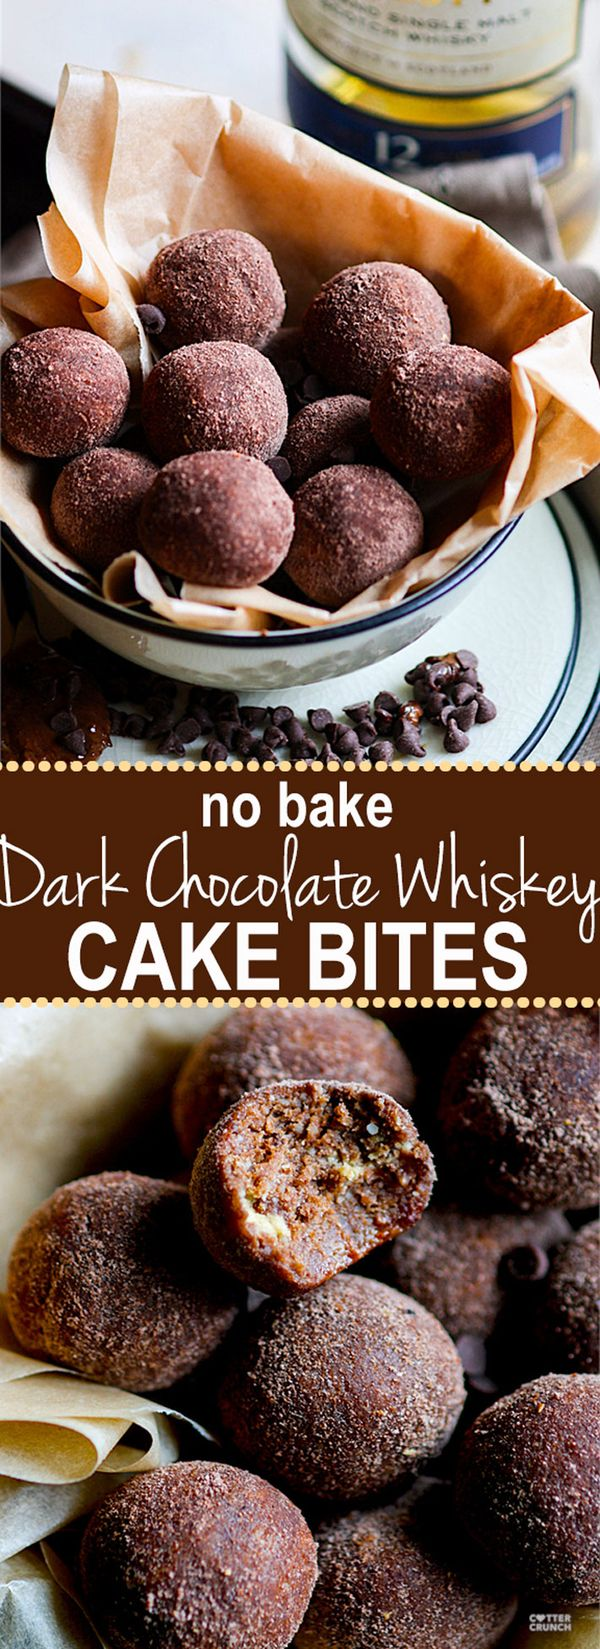 No Bake Dark Chocolate Whiskey Cake Bites!! These rich and decadent dark chocolate whiskey cake bites are so delicious and simple to make with REAL ingredients. Gluten free and non alcoholic versions as well. Great for a healthier dessert or fun party snacks. www.cottercrunch.com!